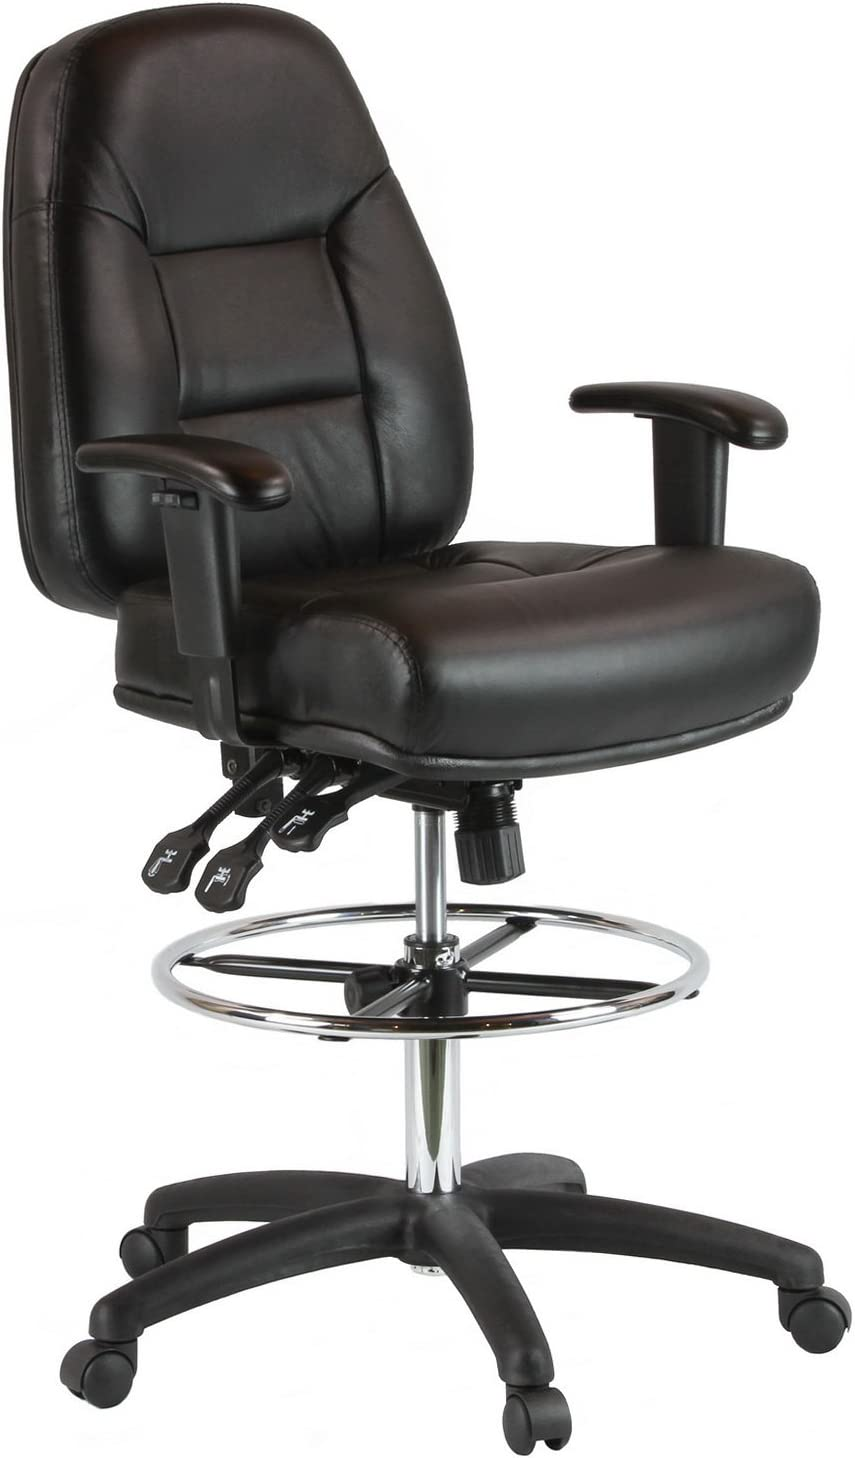 Harwick Premium Leather Drafting Chair with Arms - Black Leather